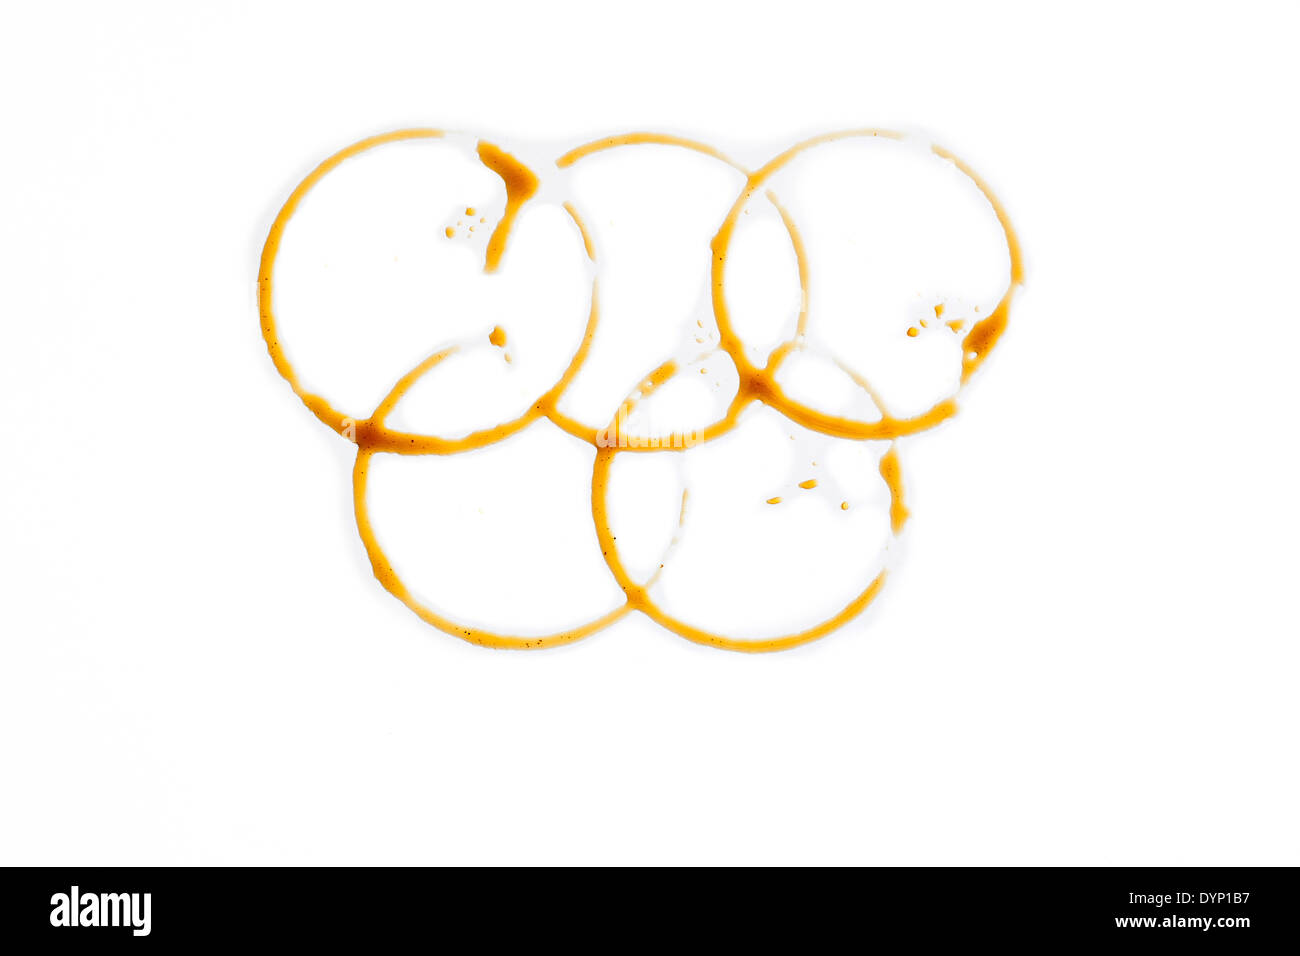 Olympic rings made of coffee drops - Stock Image